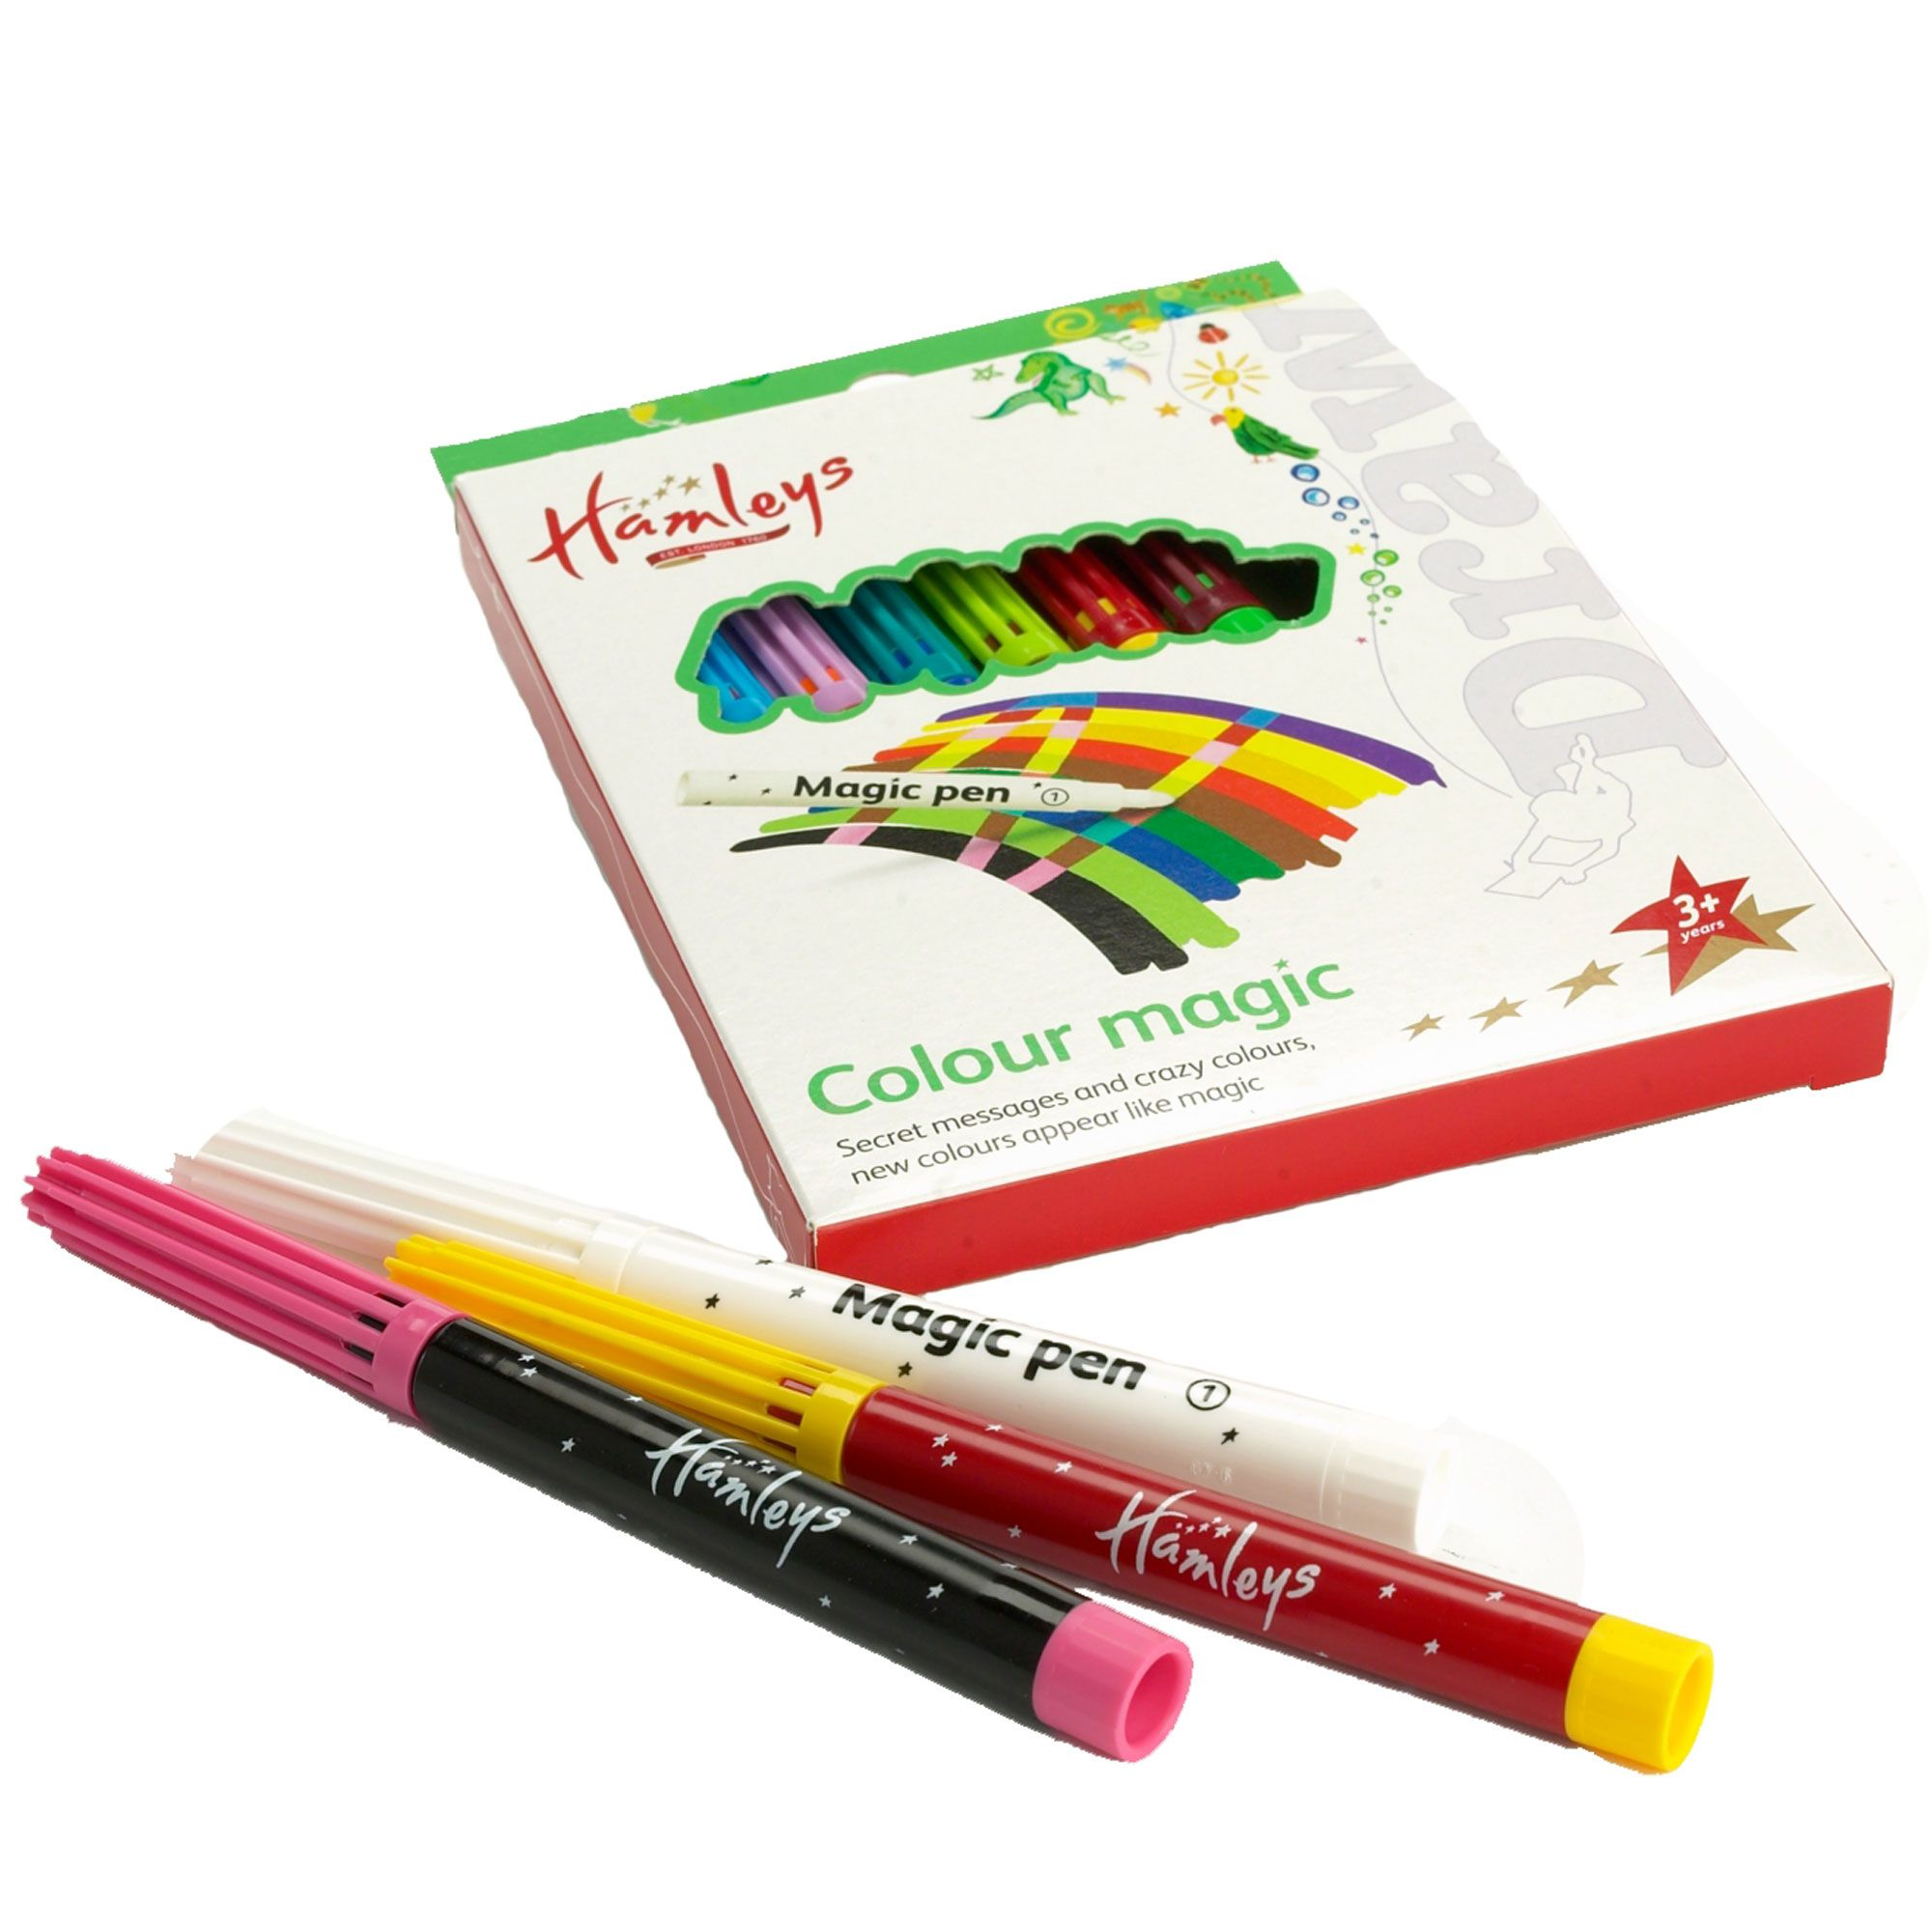 Hamleys Colour magic pens